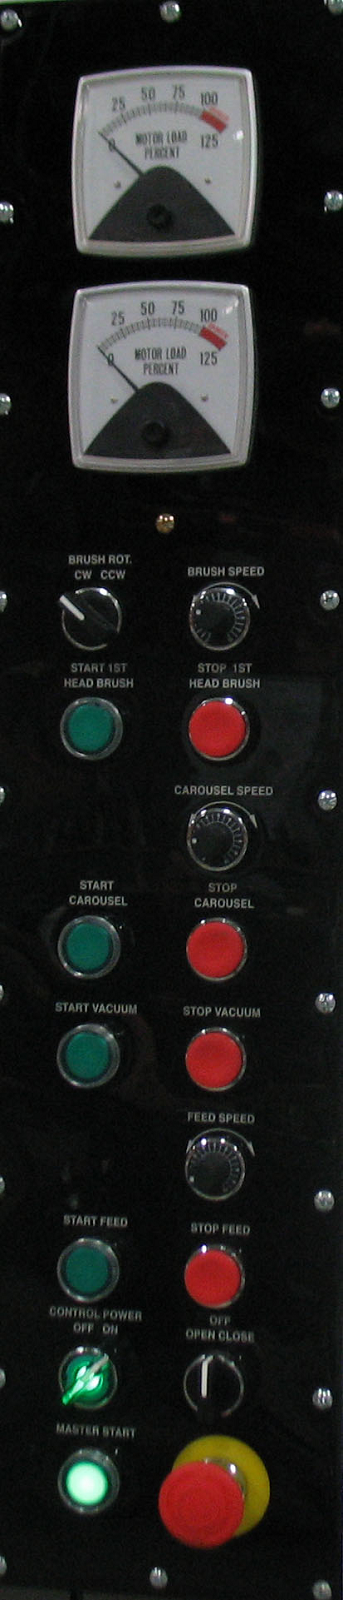 2200_control_panel.png